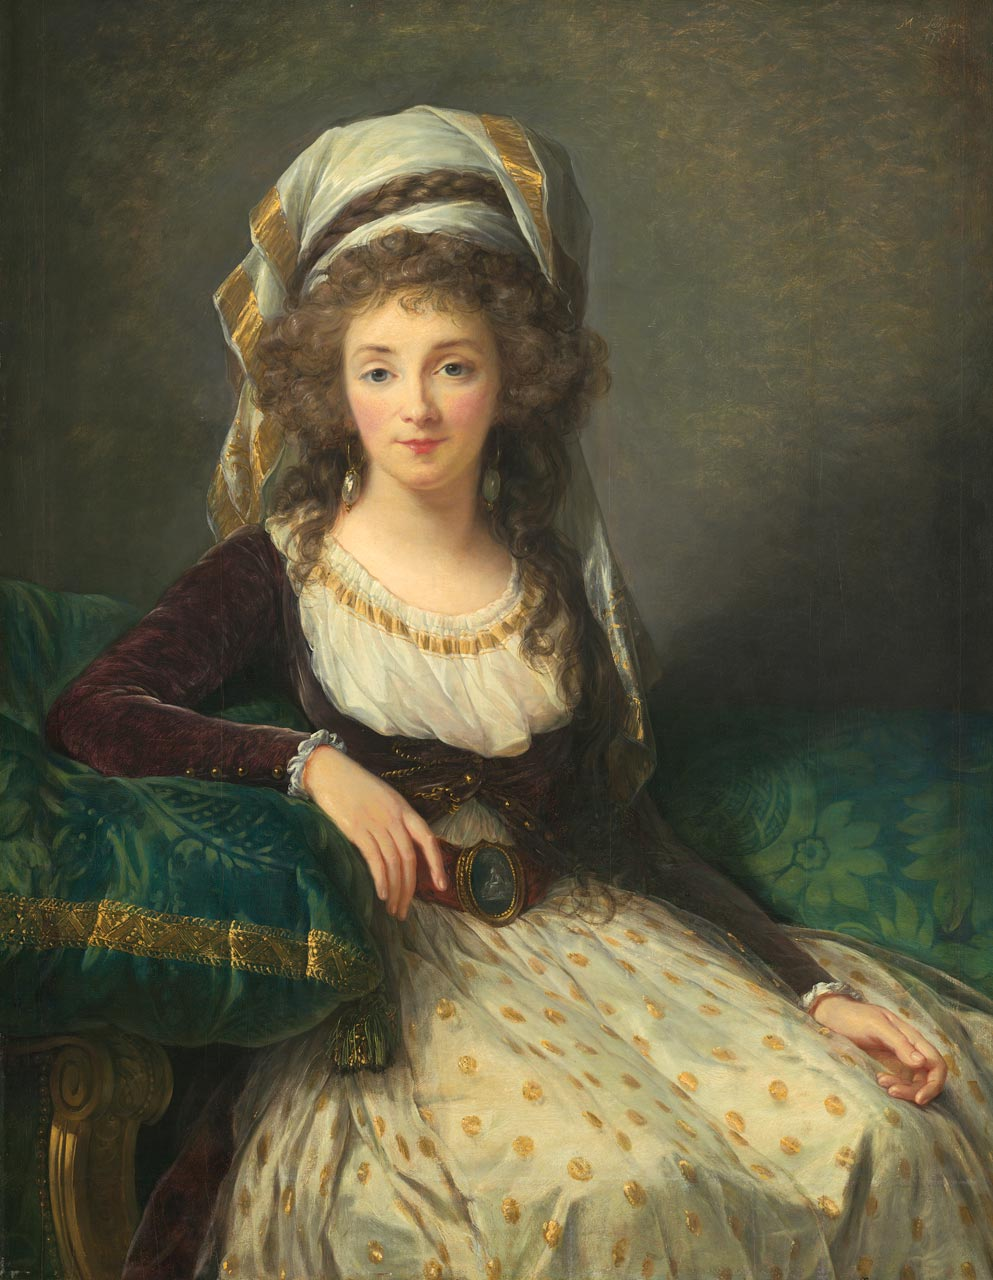 MADAME D'AGUESSEAU DE FRESNES by Elisabeth-Louise Vigée-LeBrun, 1789. Courtesy of National Gallery of Art, Washington, D.C. Samuel H. Kress Collection (1946.7.16).